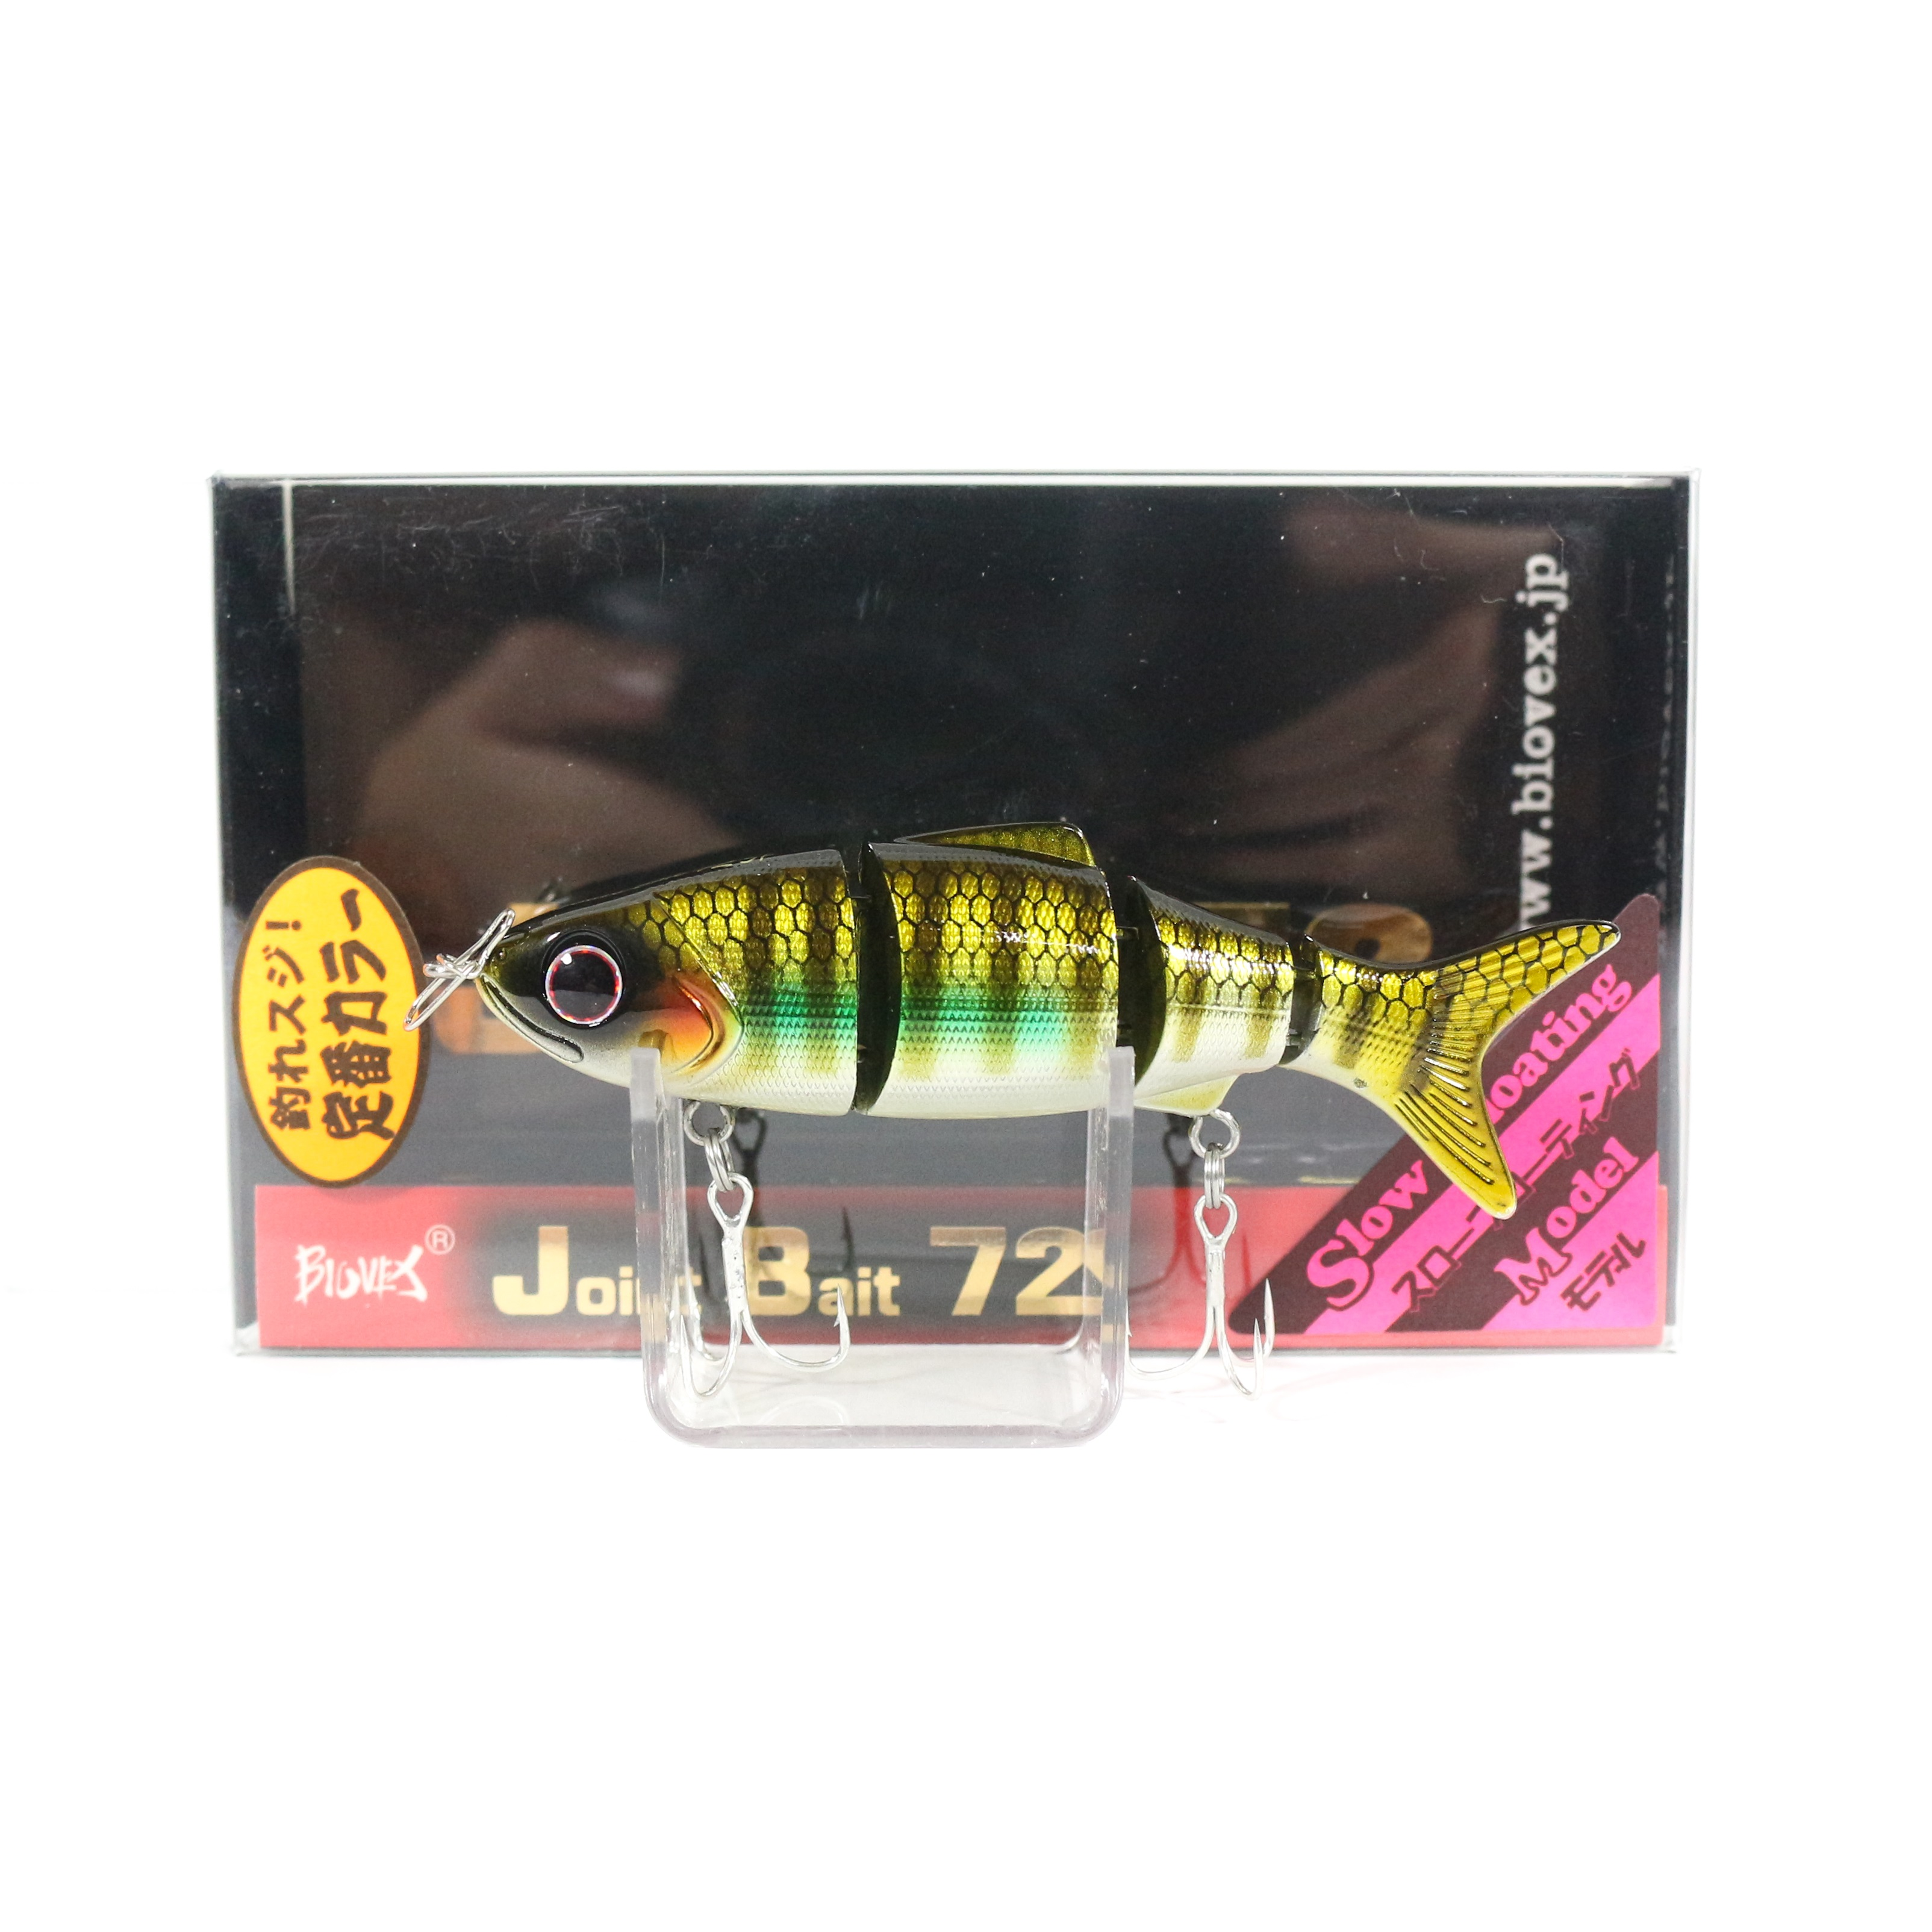 Biovex Joint Bait 72SF Flat Side Slow Floating Lure 77 (3390)